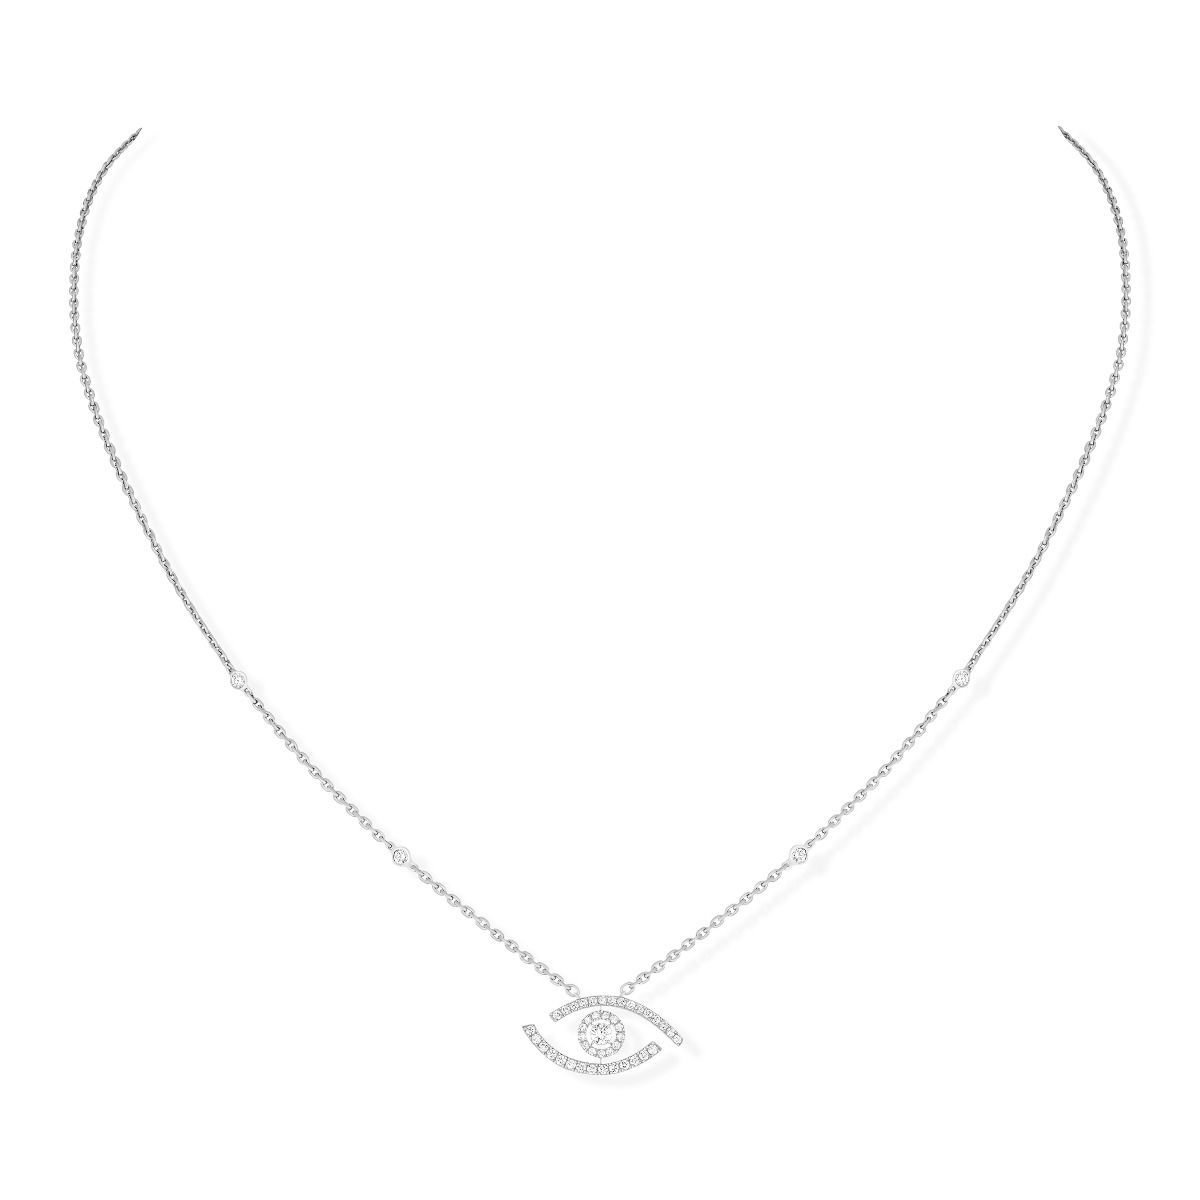 Lucky Eye Pavé Necklace - White Gold